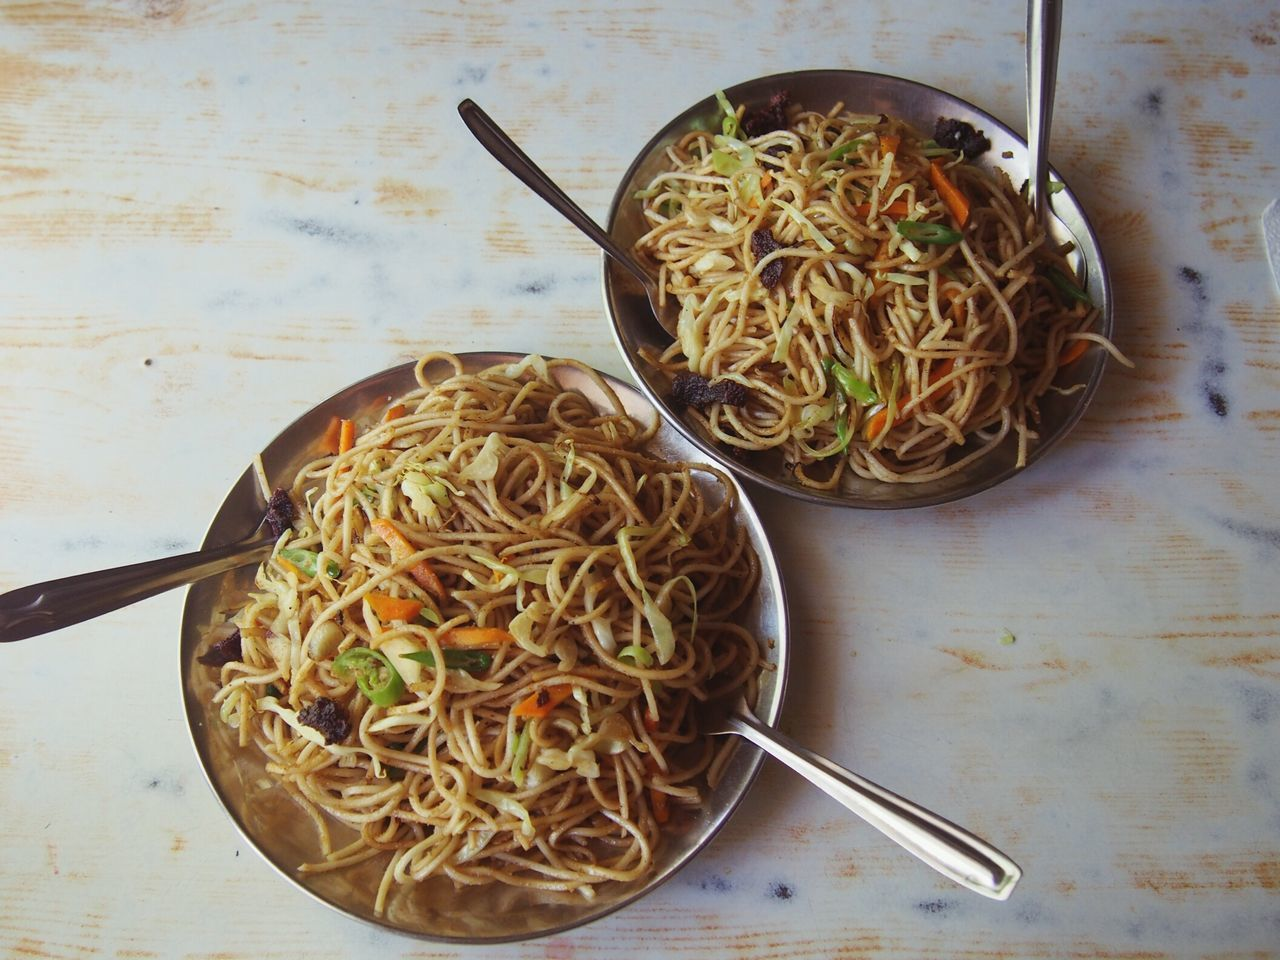 pasta, noodles, food and drink, spaghetti, freshness, fork, food, italian food, table, indoors, bowl, ready-to-eat, no people, healthy eating, chopsticks, serving size, high angle view, garnish, directly above, meal, plate, close-up, day